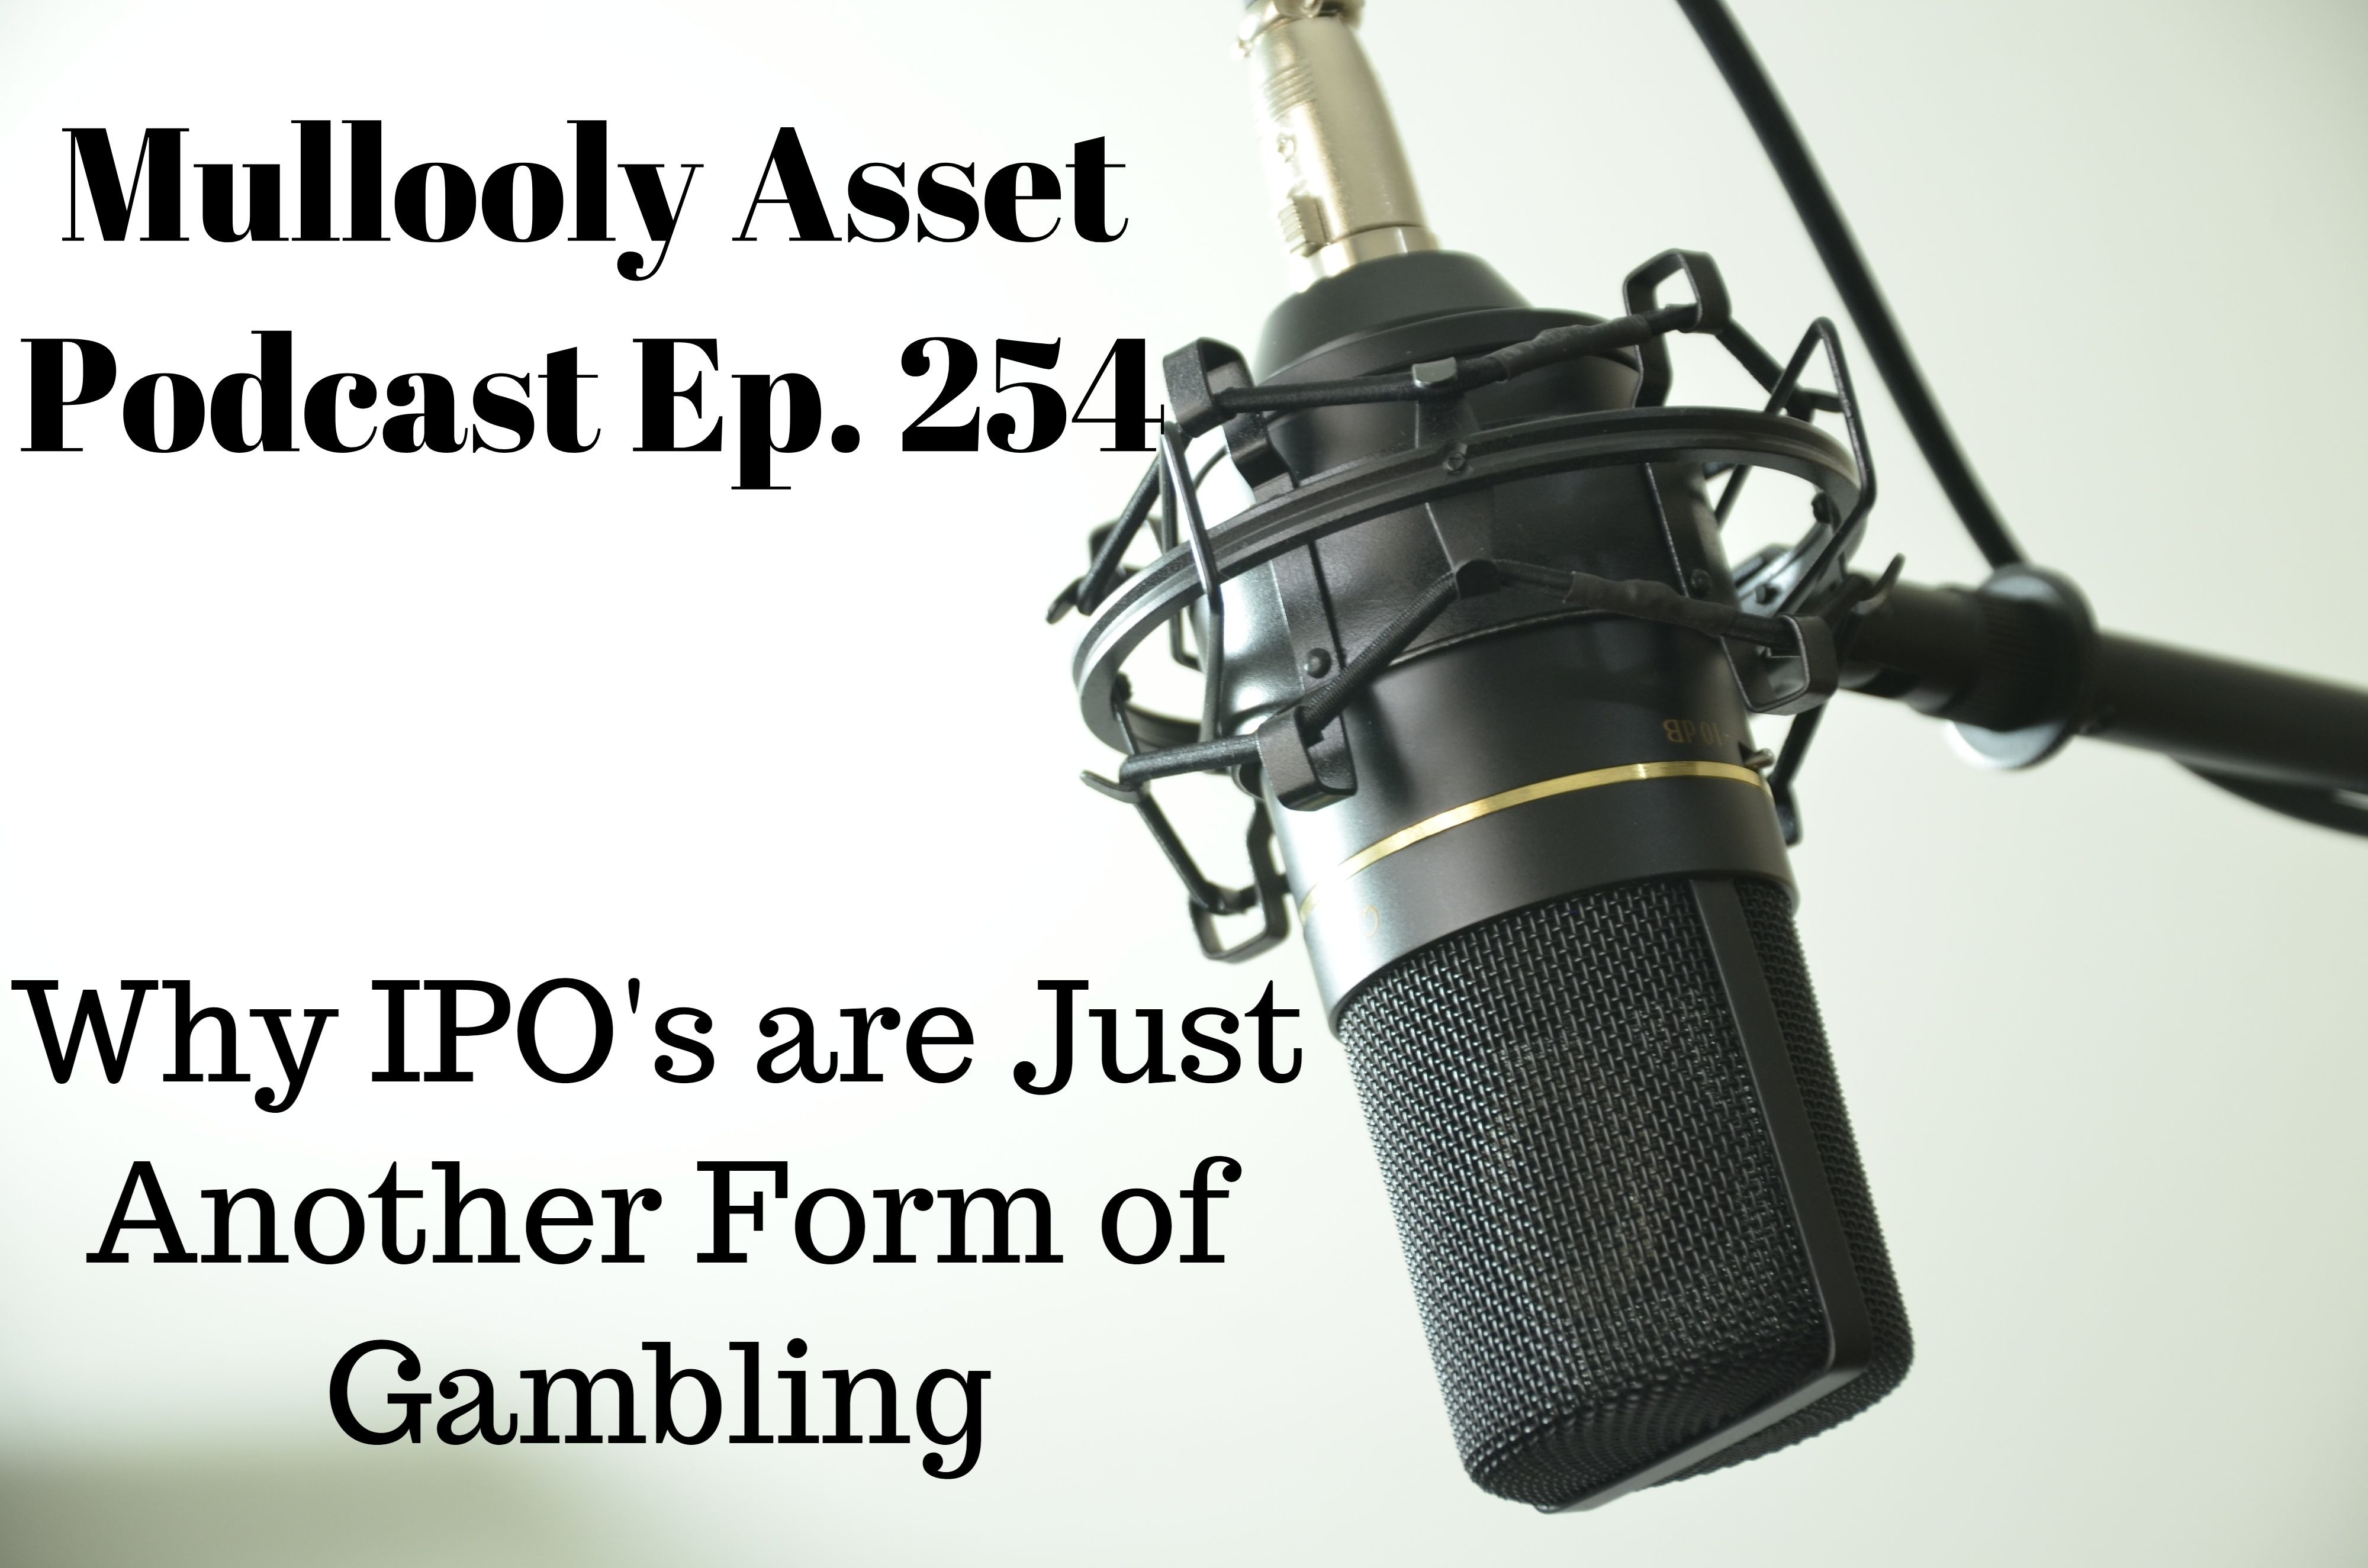 Why IPO's are Just Another Form of Gambling